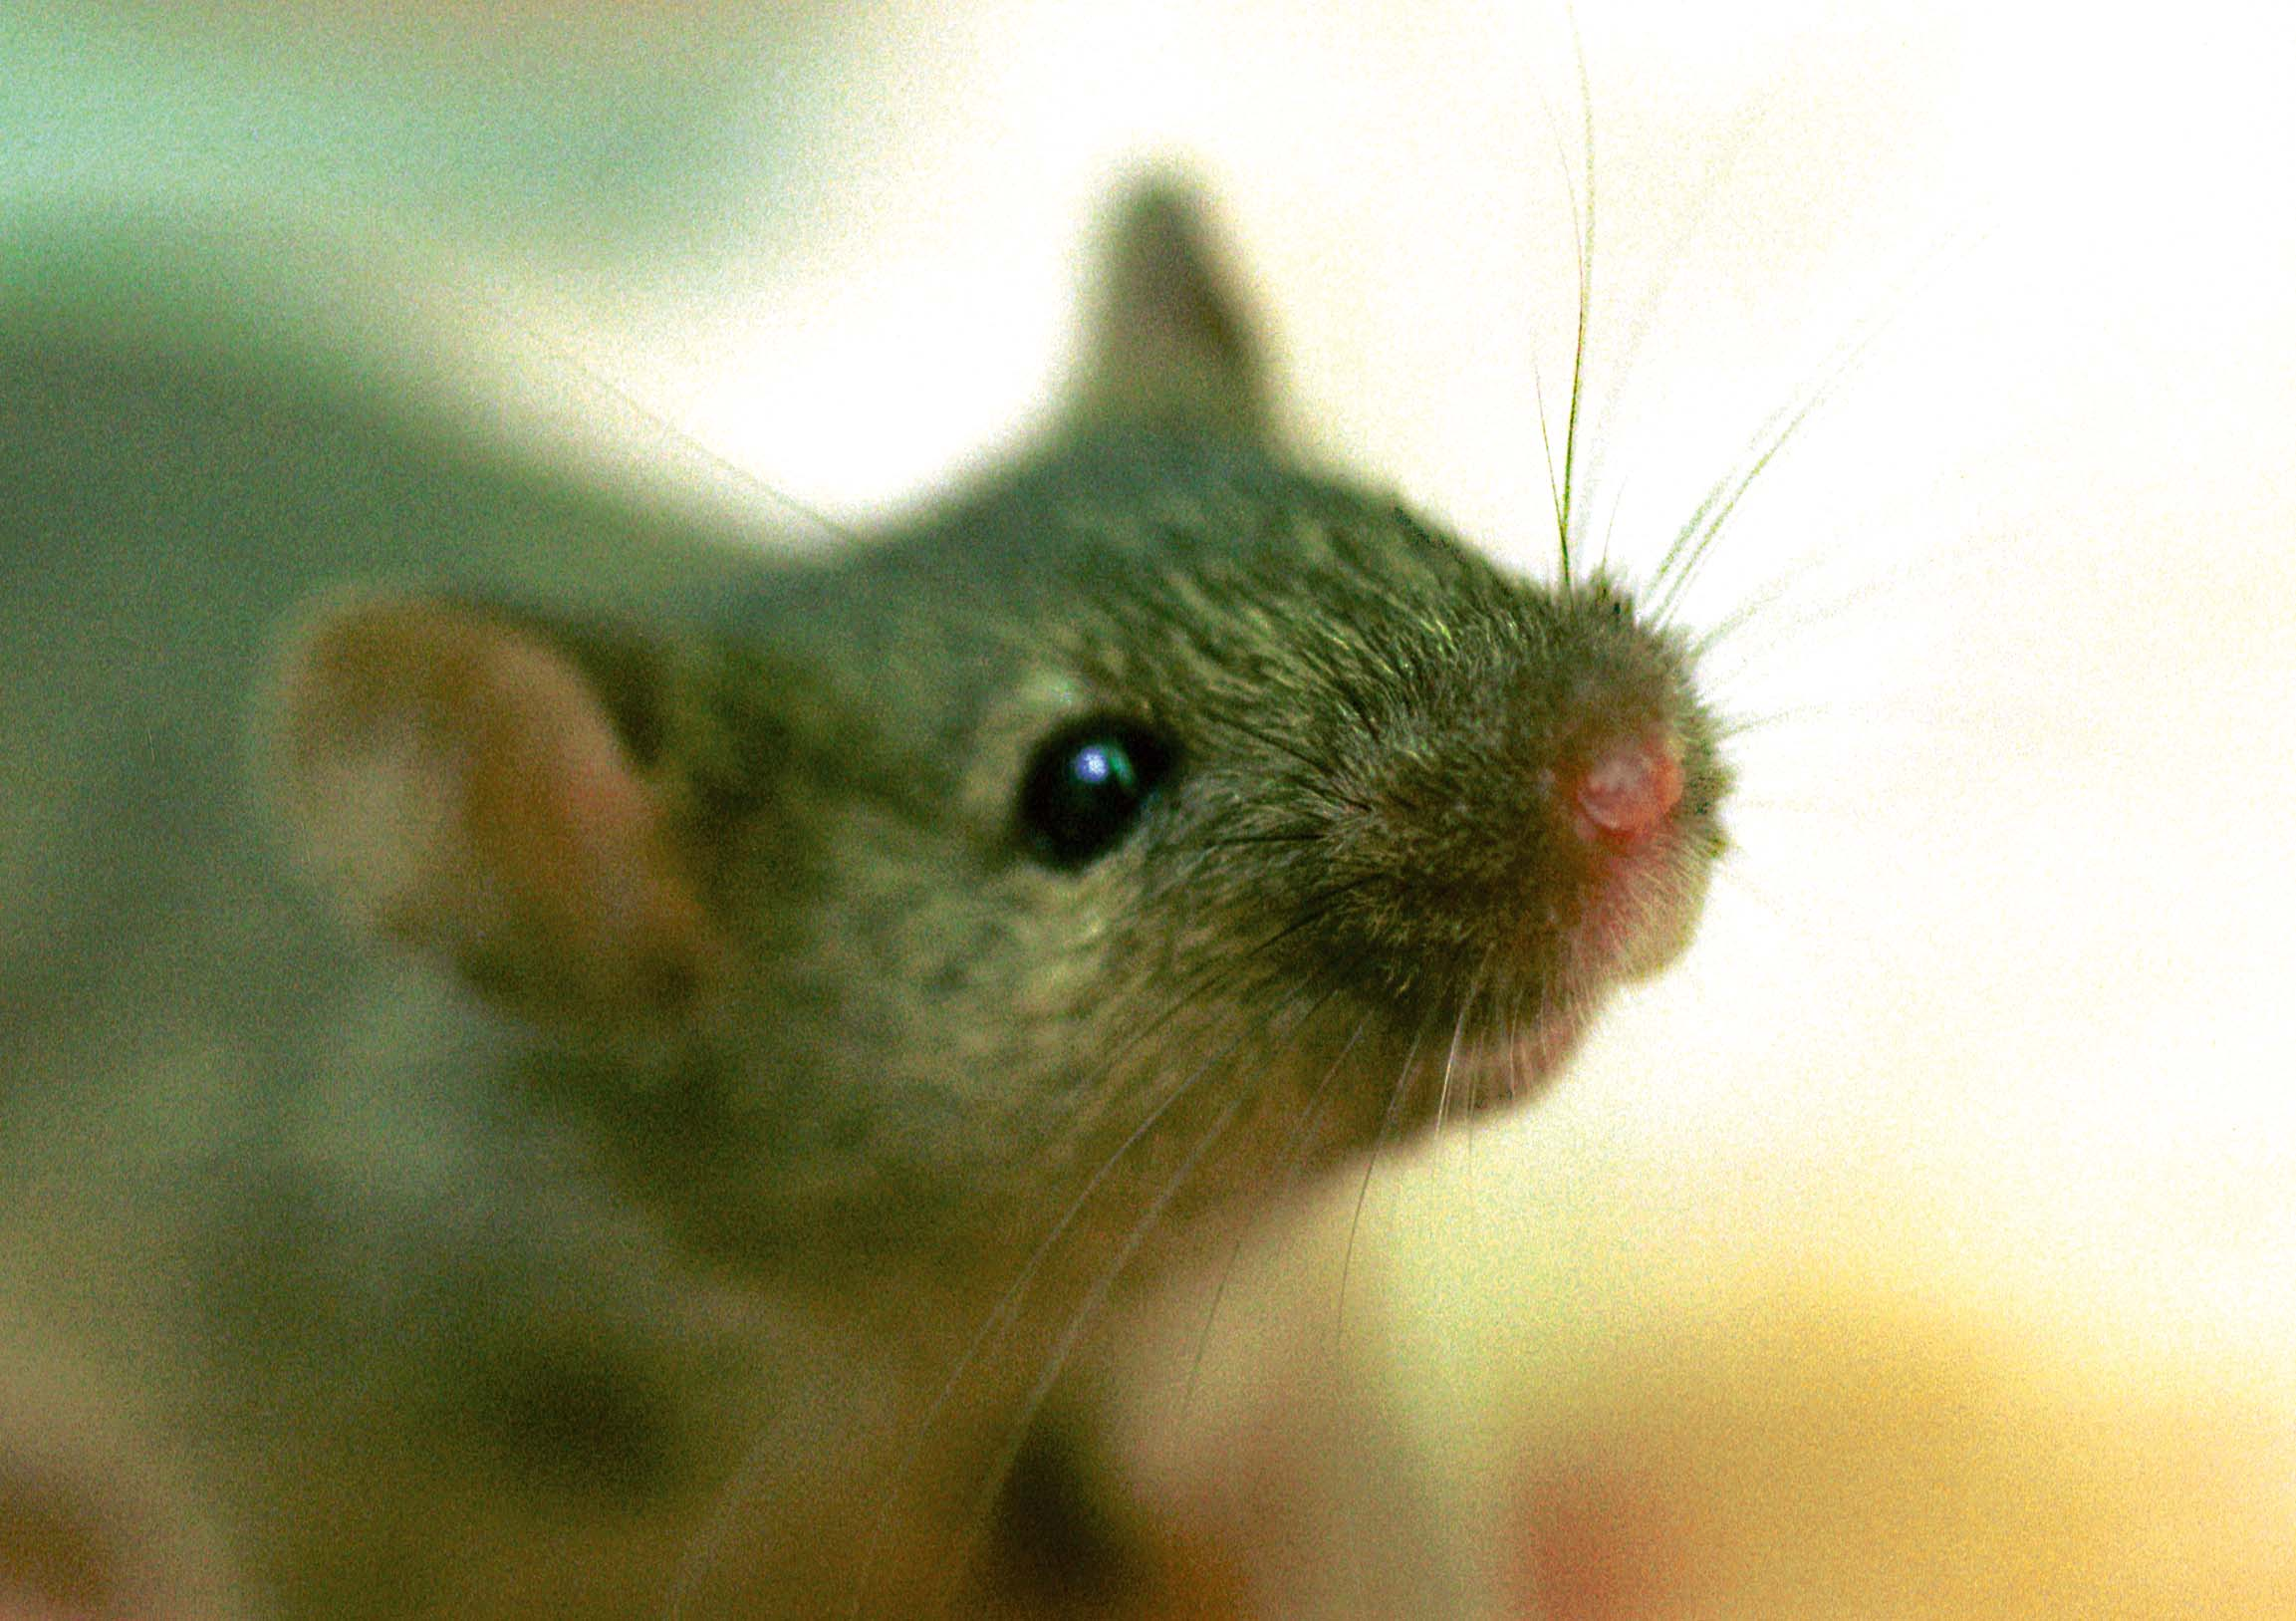 Cell Organ And Tissue Transplants Ariinfo Lab Grown Blood Successfully Experimented On A Human 04 06 15 Worlds First Rat Forelimb In